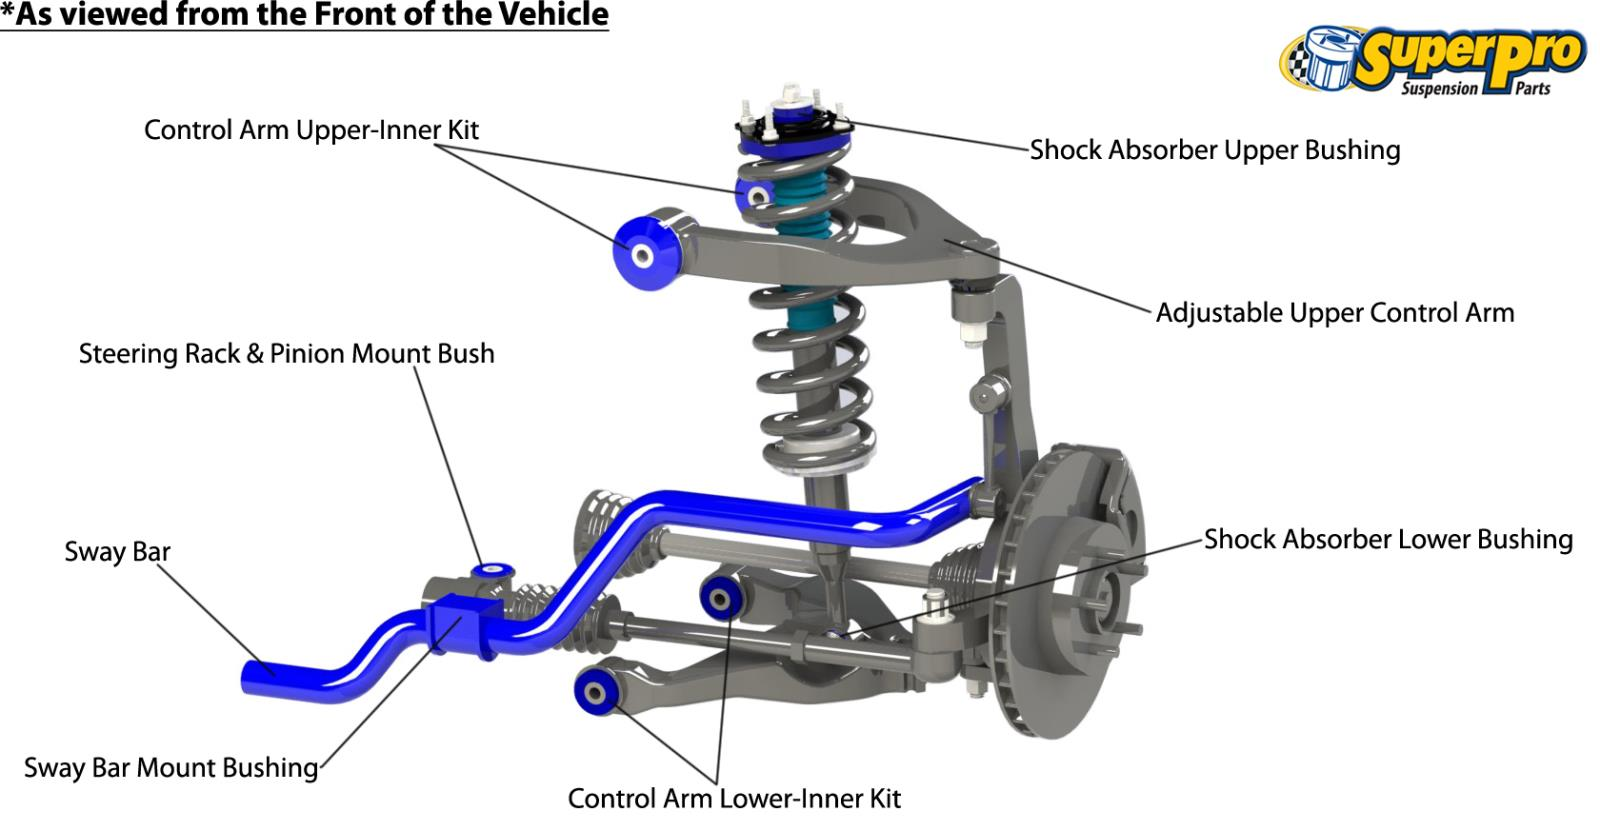 Front suspension diagram for VW AMAROK 2010-on - 4motion